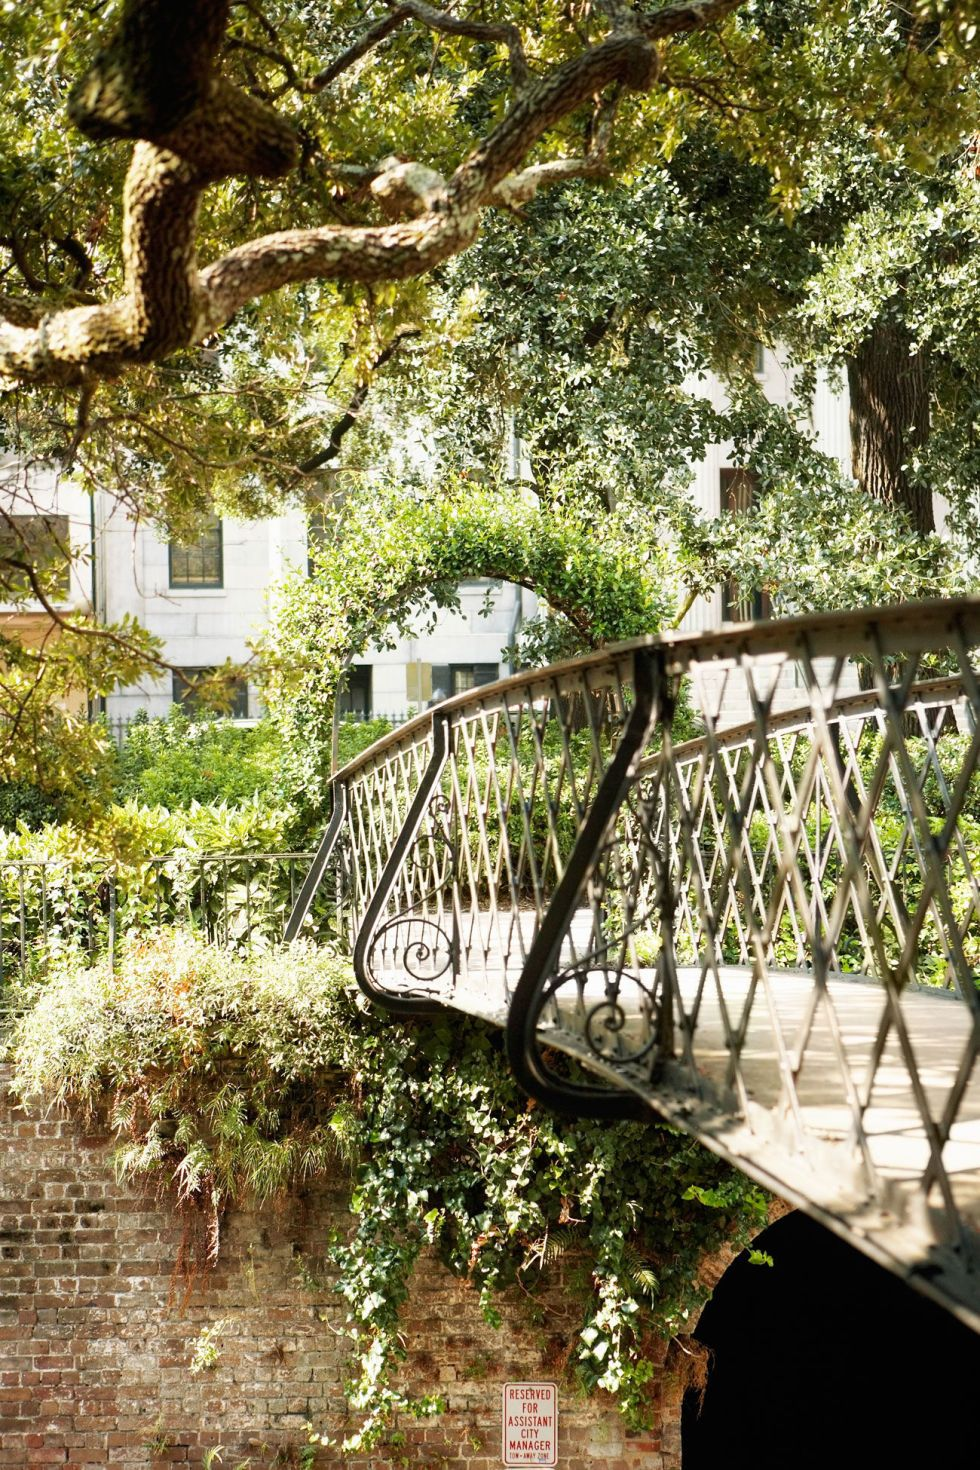 25 Things You Need To Know About Savannah Georgia Savannah Chat Georgia Travel Visit Savannah